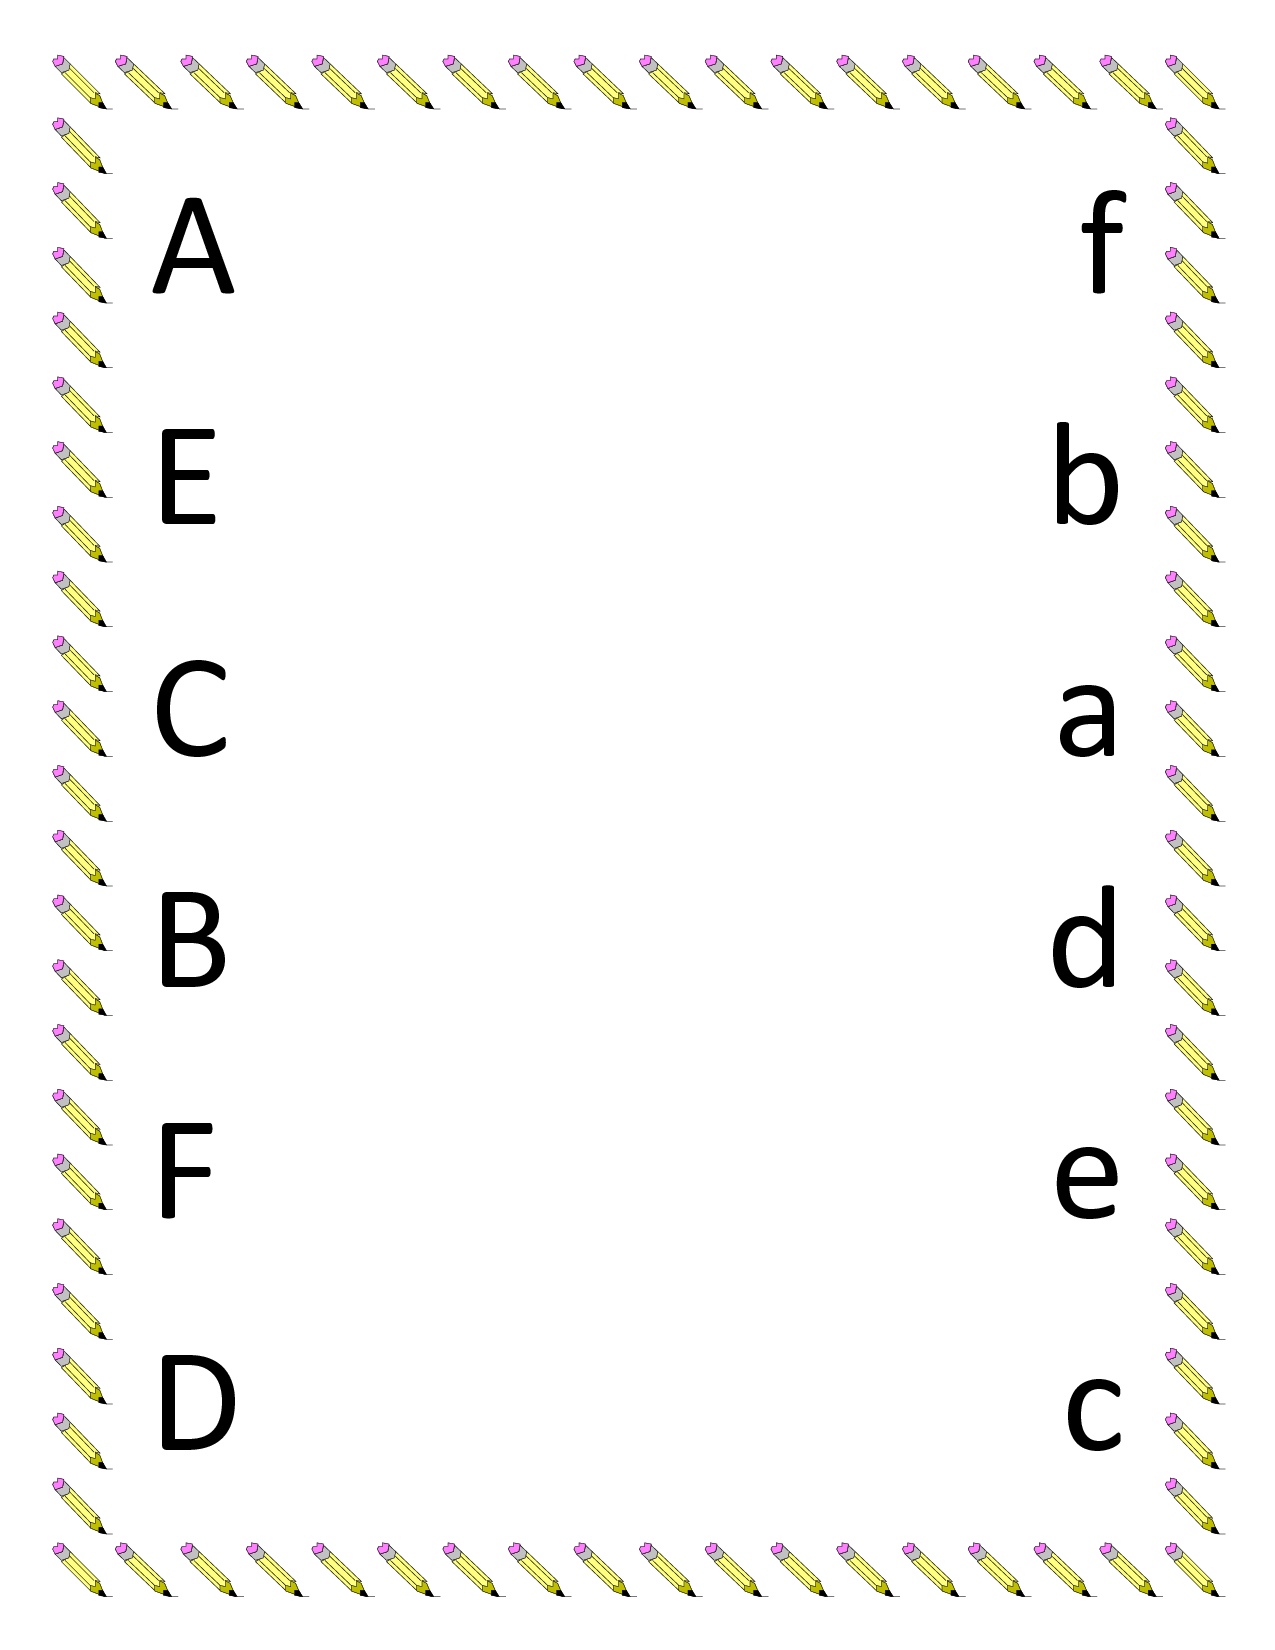 kindergarten worksheets Preschool worksheets – Letter a Worksheets for Preschool